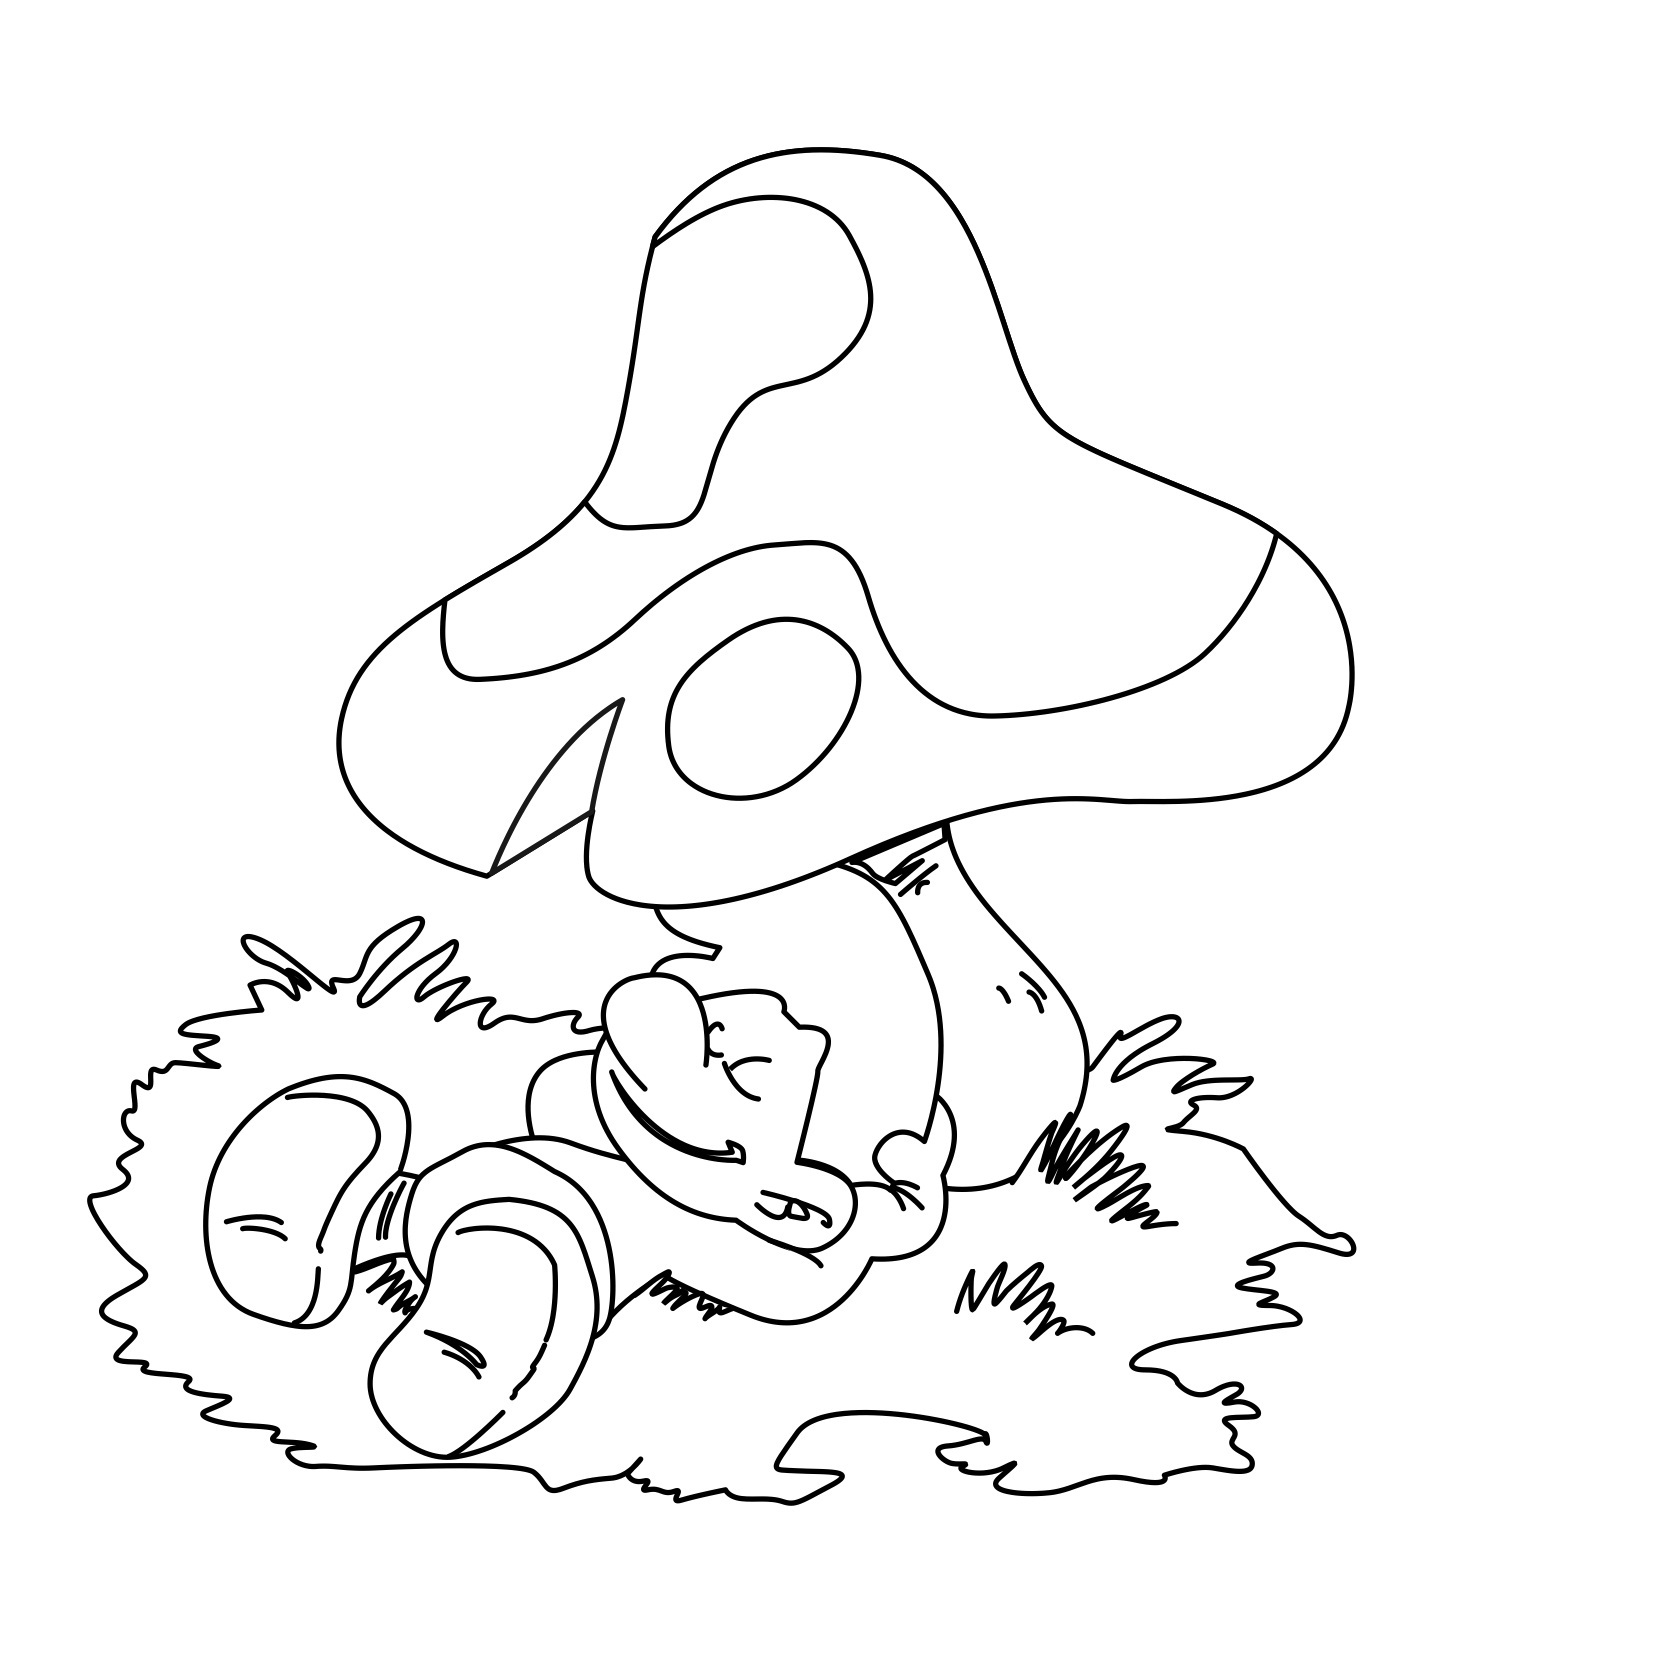 printable smurf coloring pages - photo#33